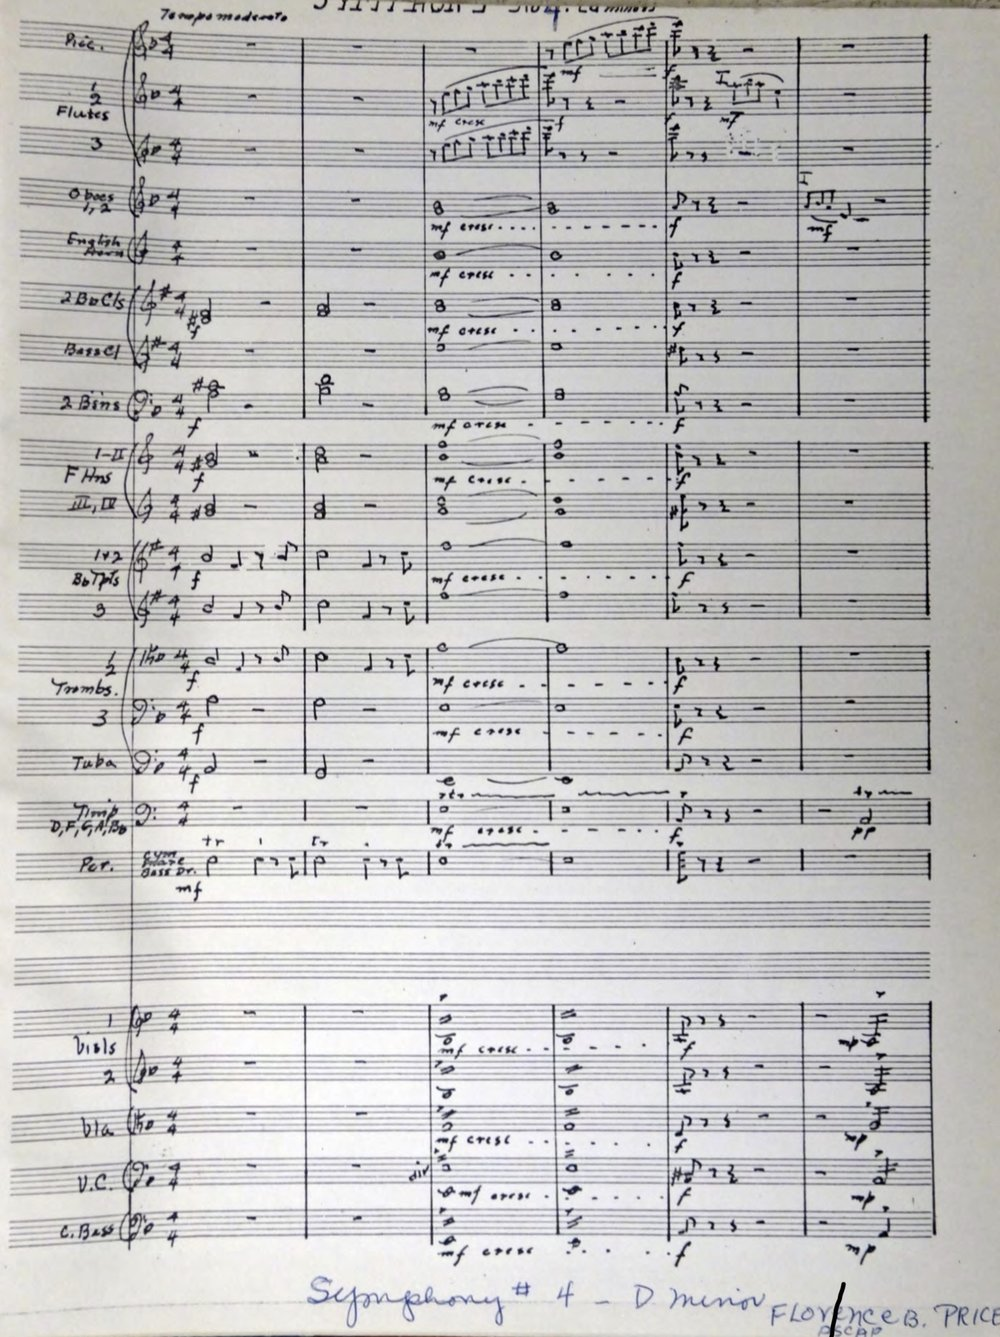 First page of the manuscript for Price's Symphony No. 4